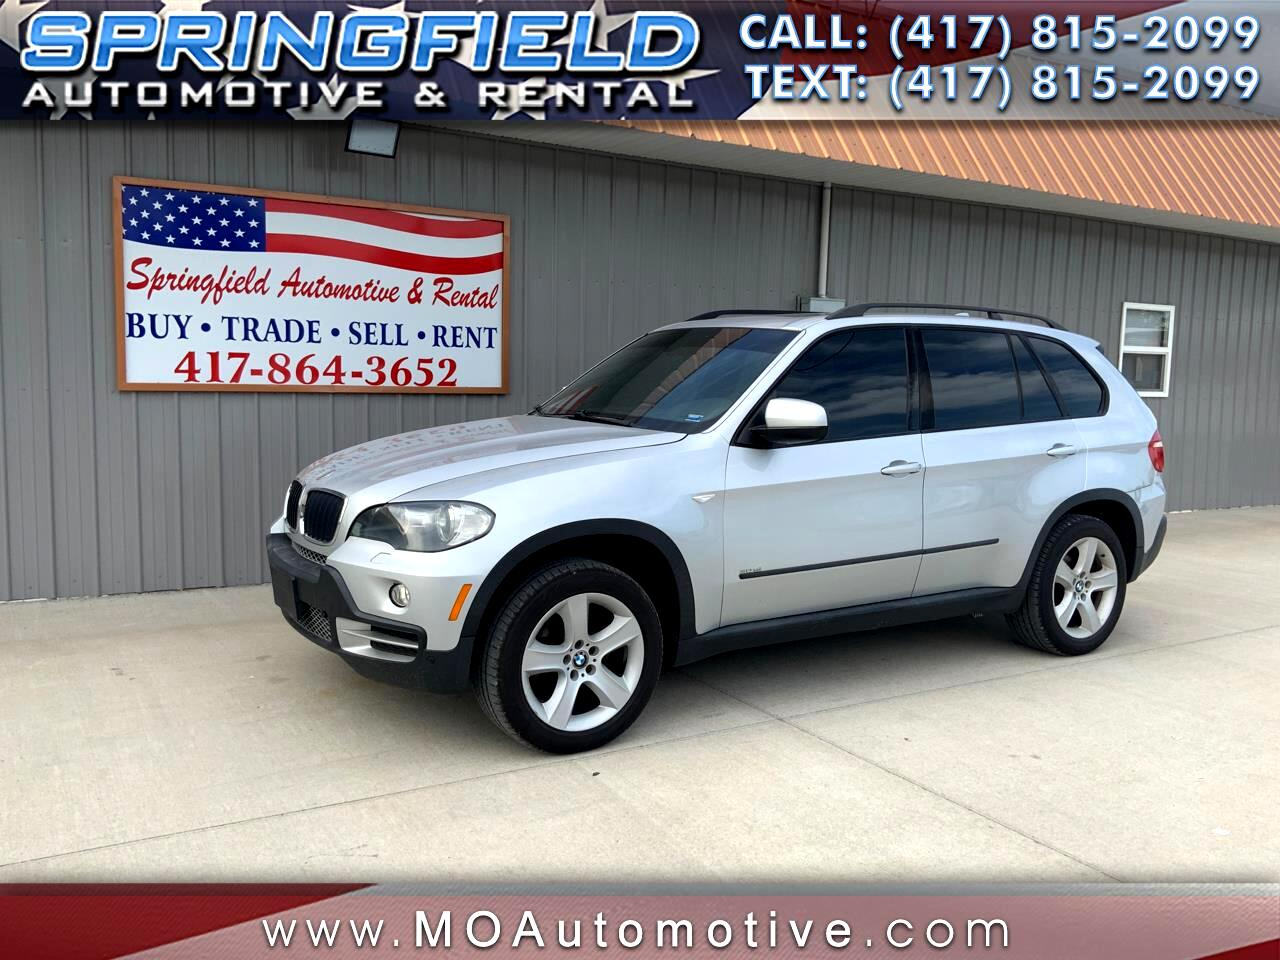 Used 2007 Bmw X5 3 0si For Sale In Springfield Mo 65807 Springfield Automotive Rental